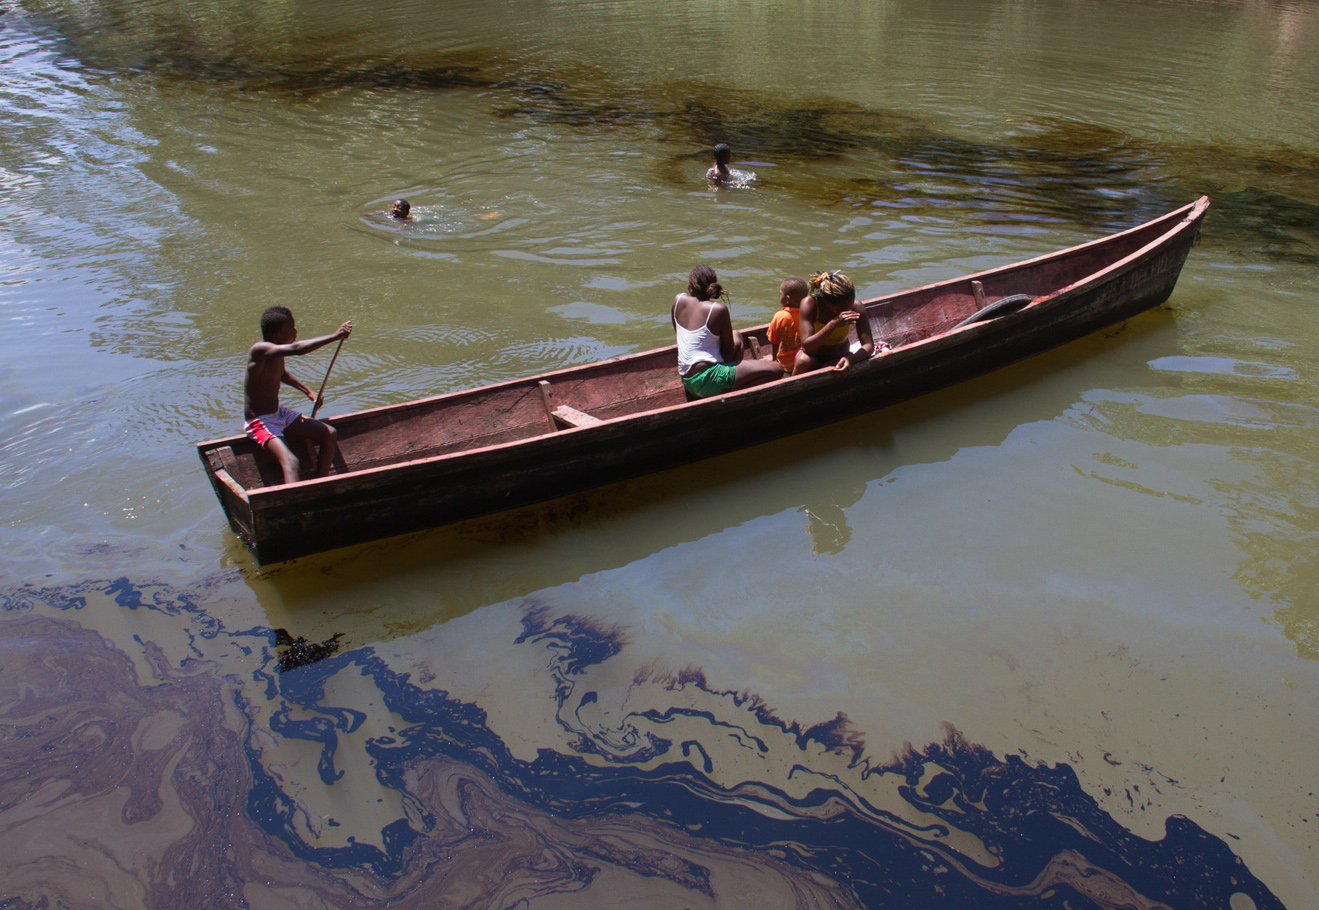 Crude oil pollutes the Caunapí river, in Tumaco, in southwest Colombia, after the FARC guerrilla movement bombed the Trasandino pipeline on 11 June 2015. People depend on the river for their daily hygiene, laundry and food preparation